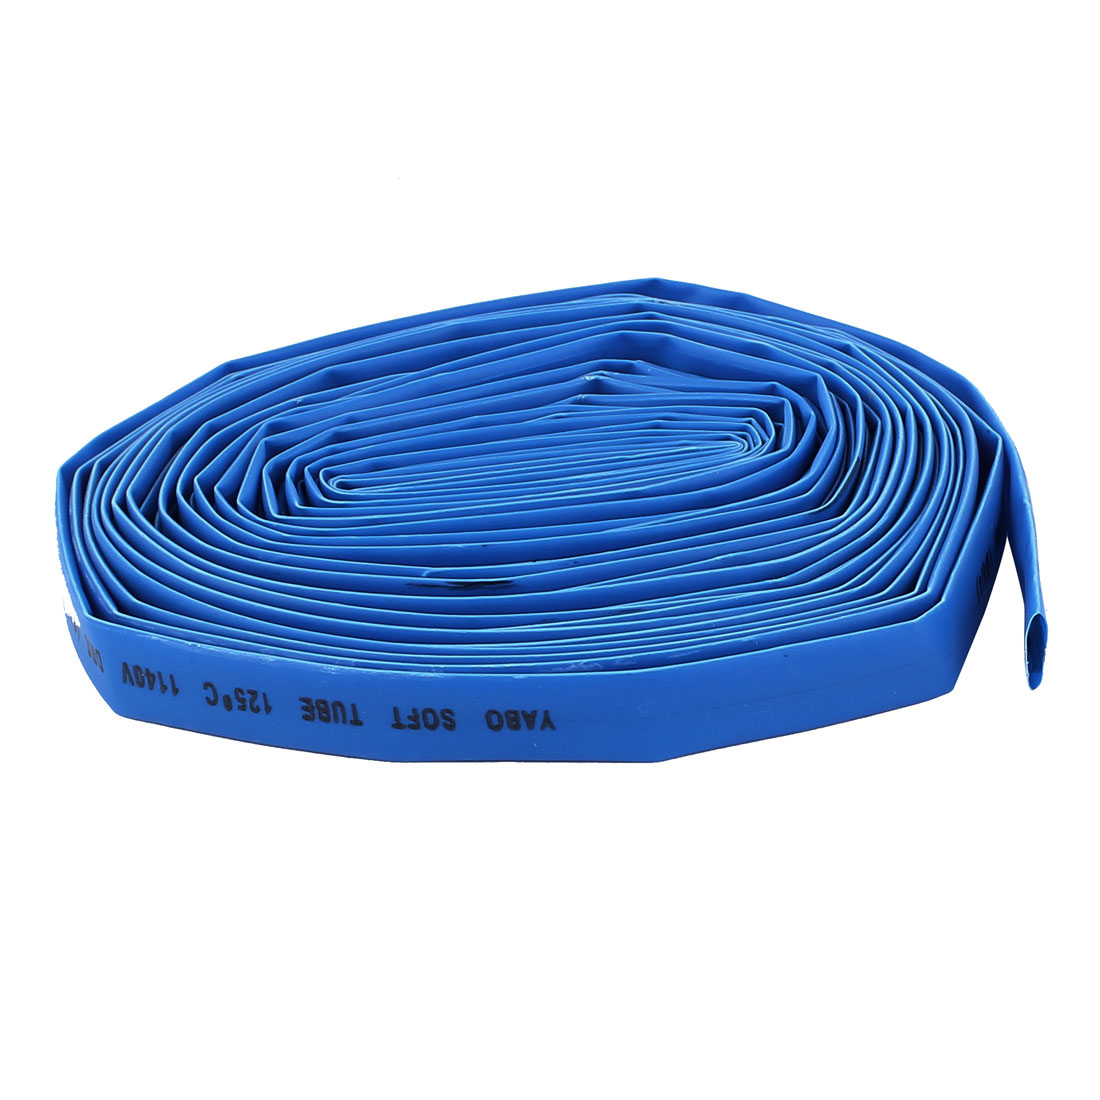 8mm Dia 8M Long Polyolefin Insulating Heat Shrinkable Tube Blue Ratio 2:1